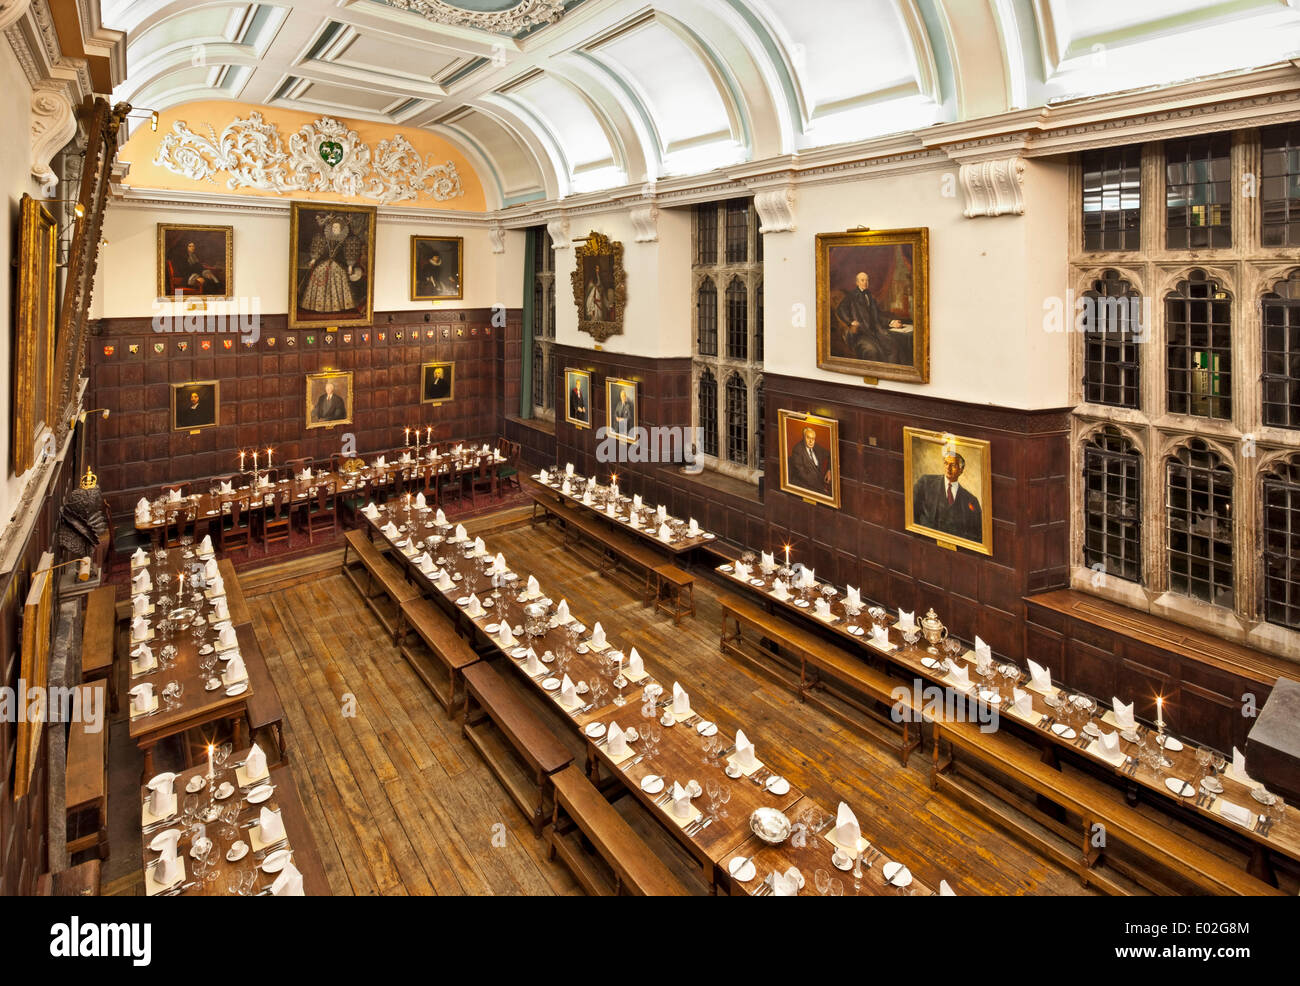 Jesus College Oxford, Oxford, United Kingdom. Architect: N/A, 1571. Dining Hall laid out for banquet with candle light. - Stock Image